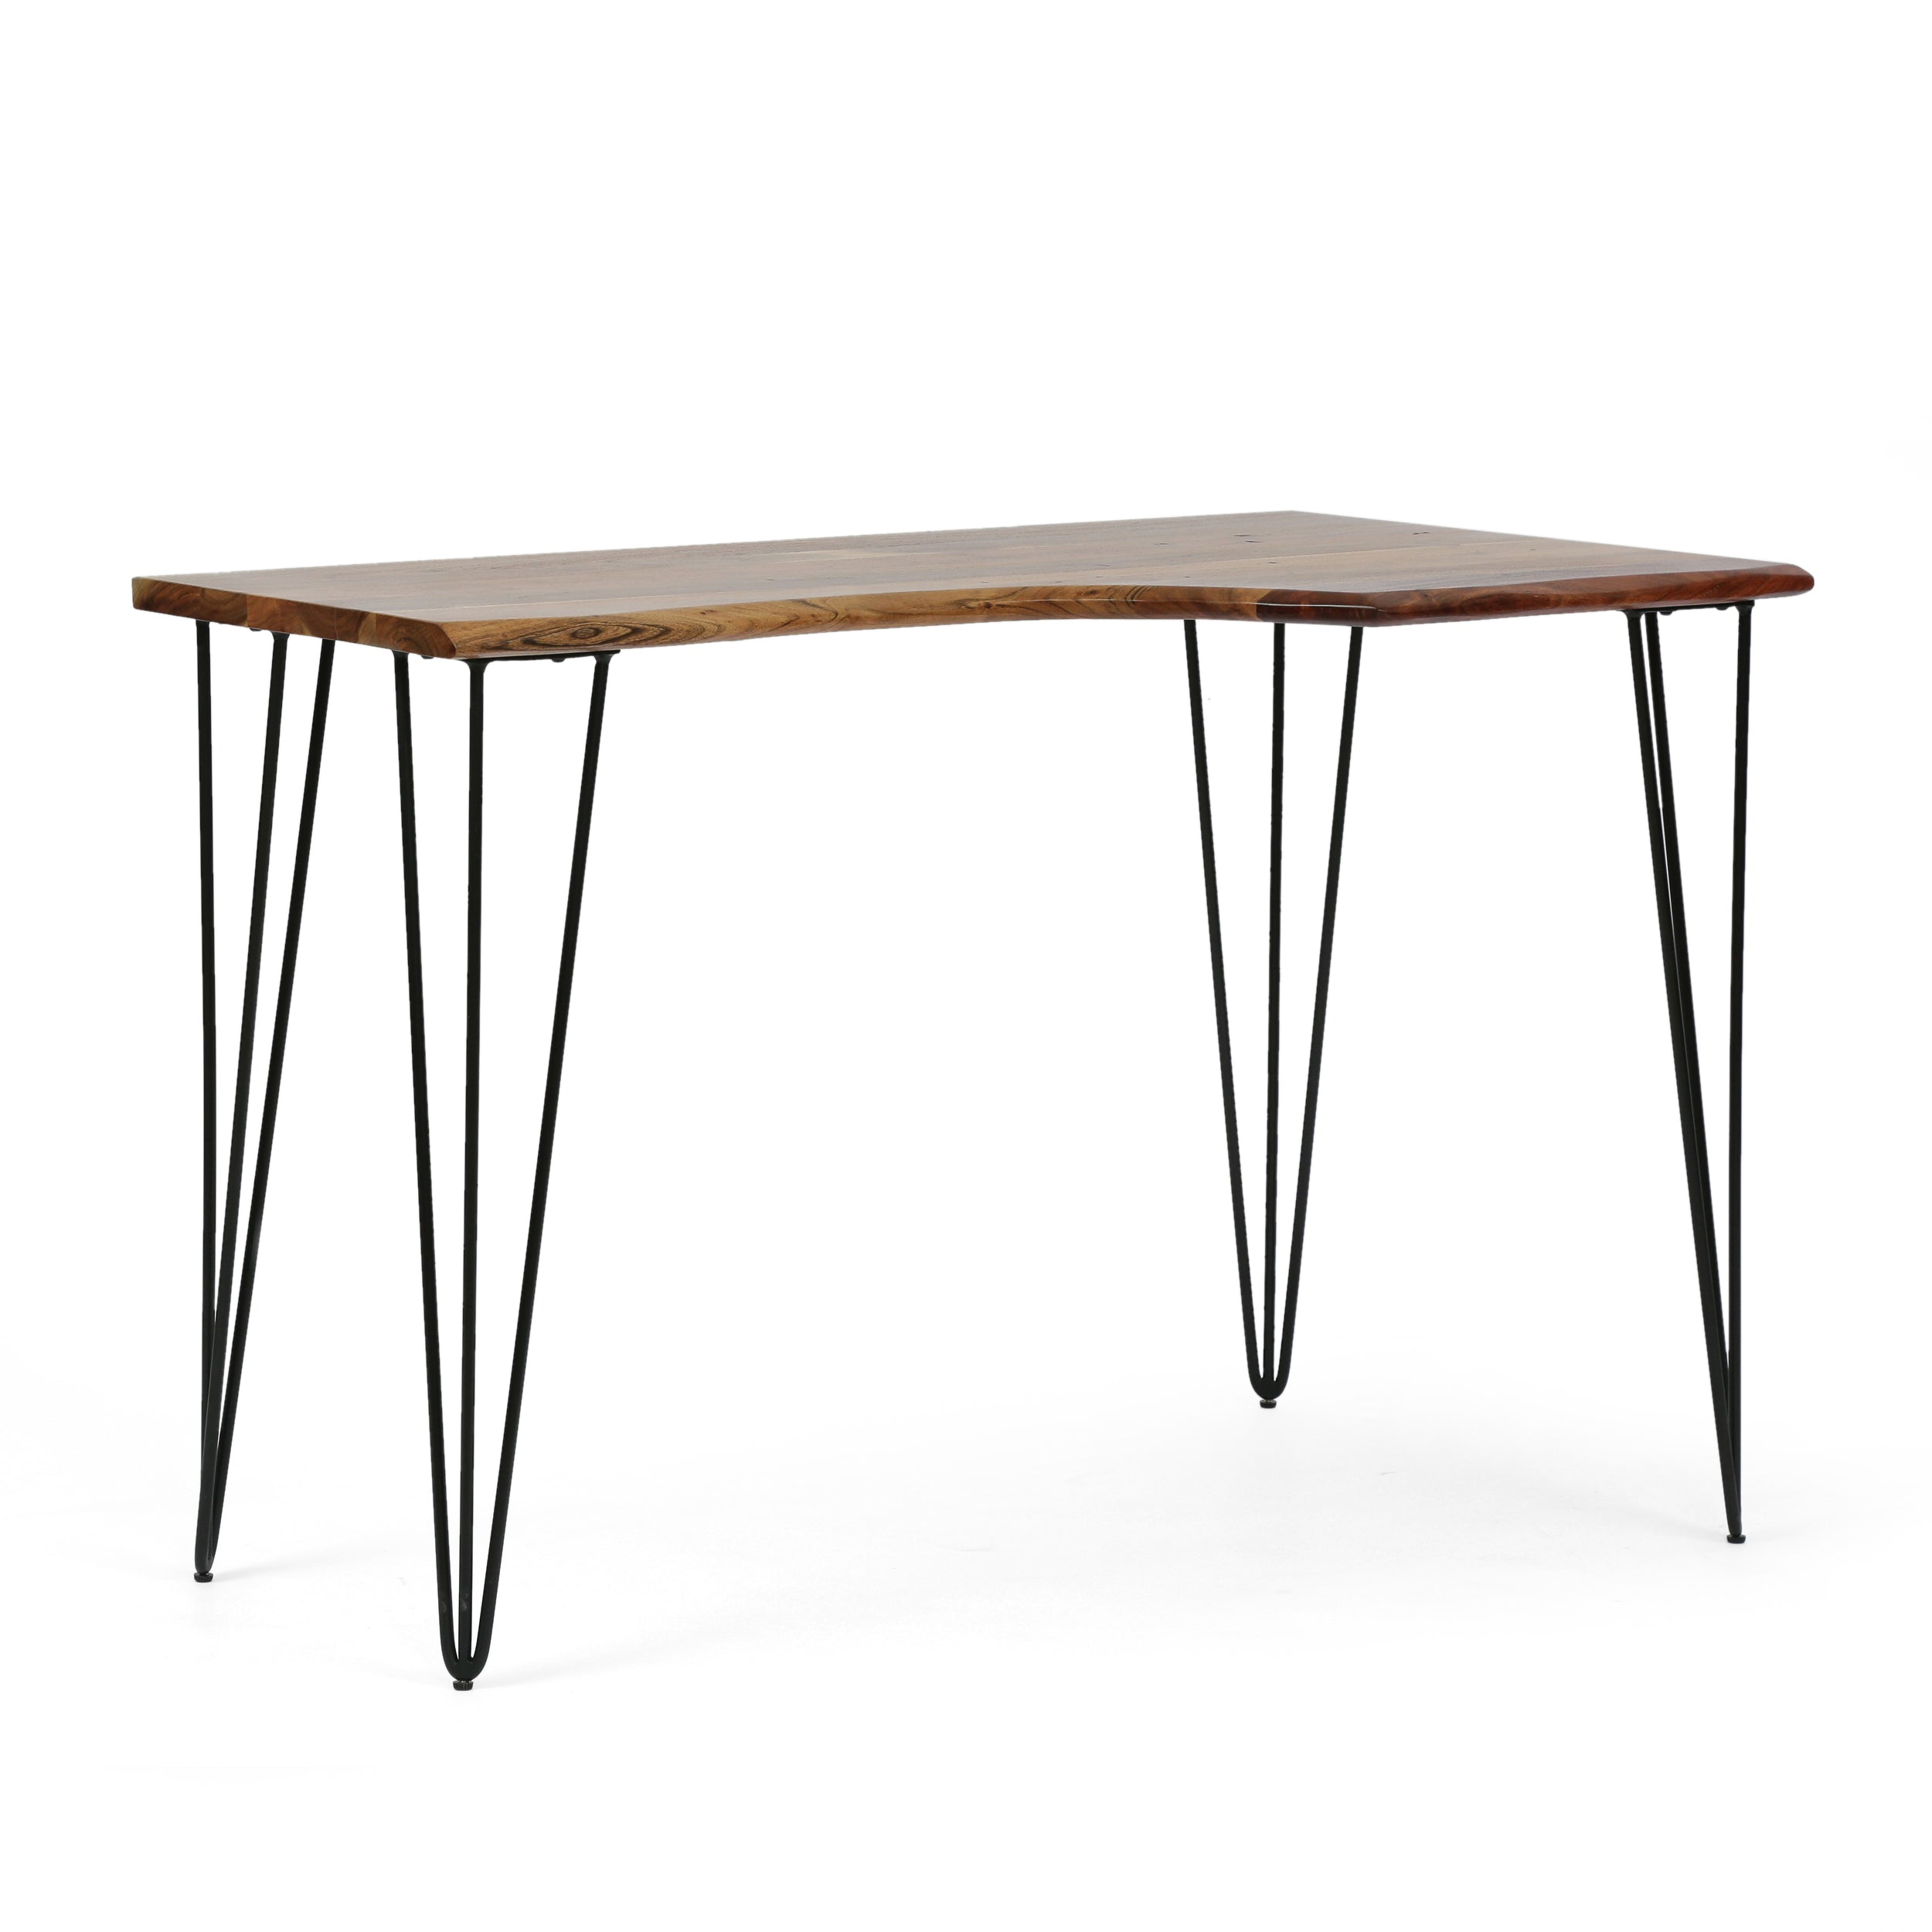 Americus Modern Industrial Handcrafted Acacia Wood Desk with Hairpin Legs Default Title